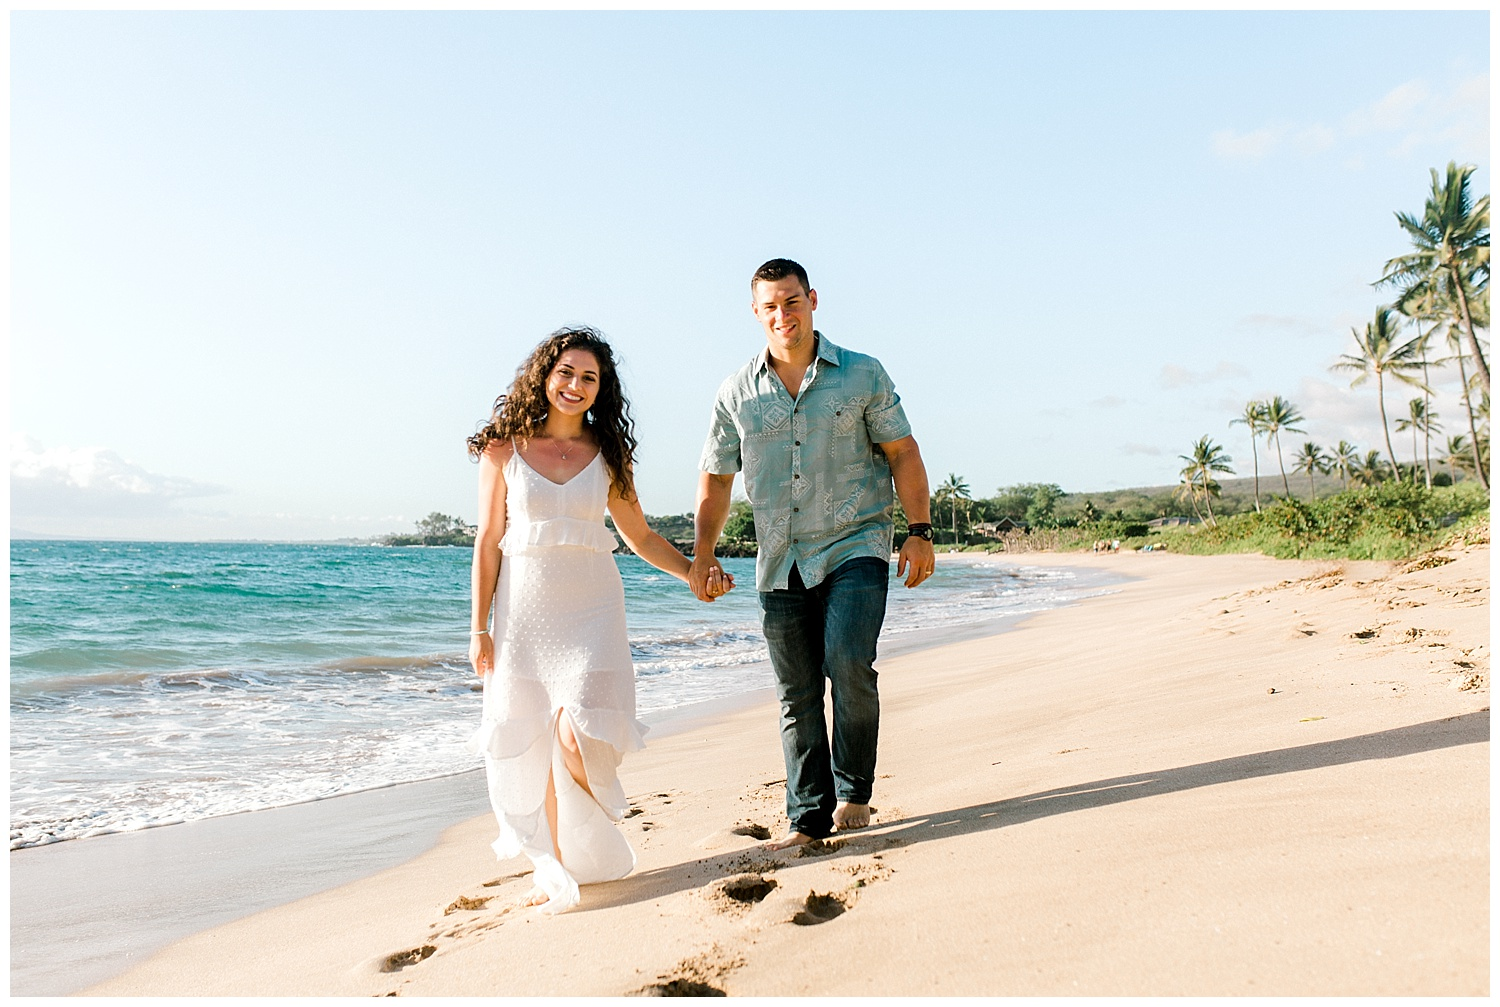 Newlyweds walking on Maui beach